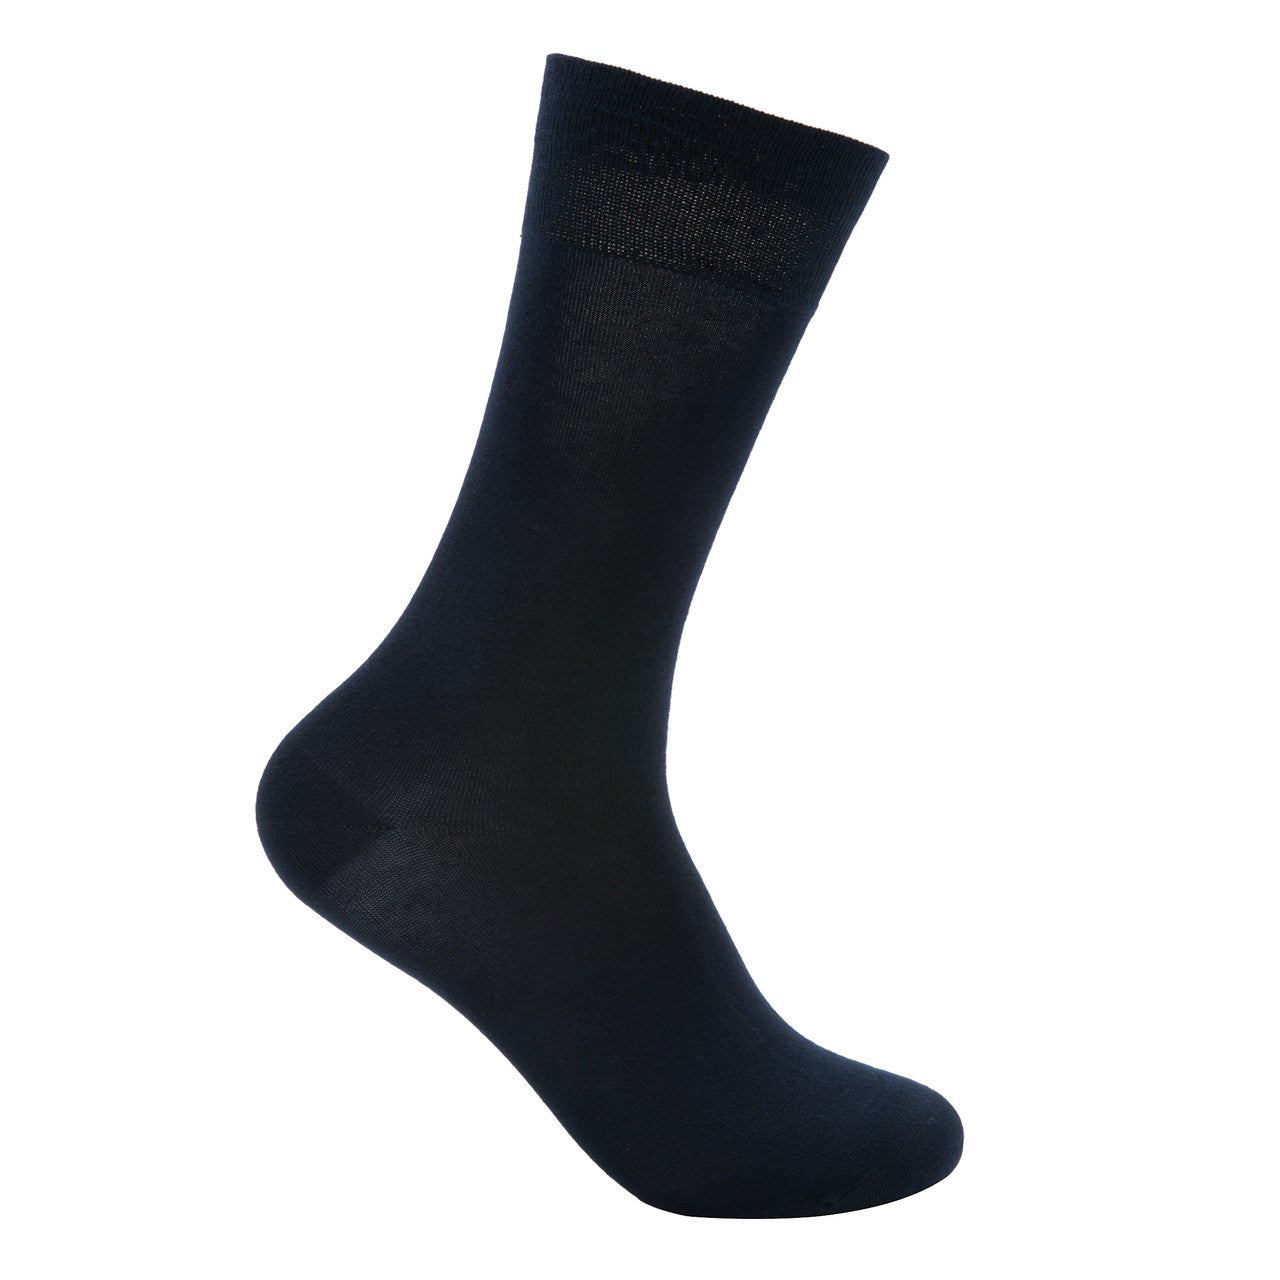 Bamboo dress socks in black